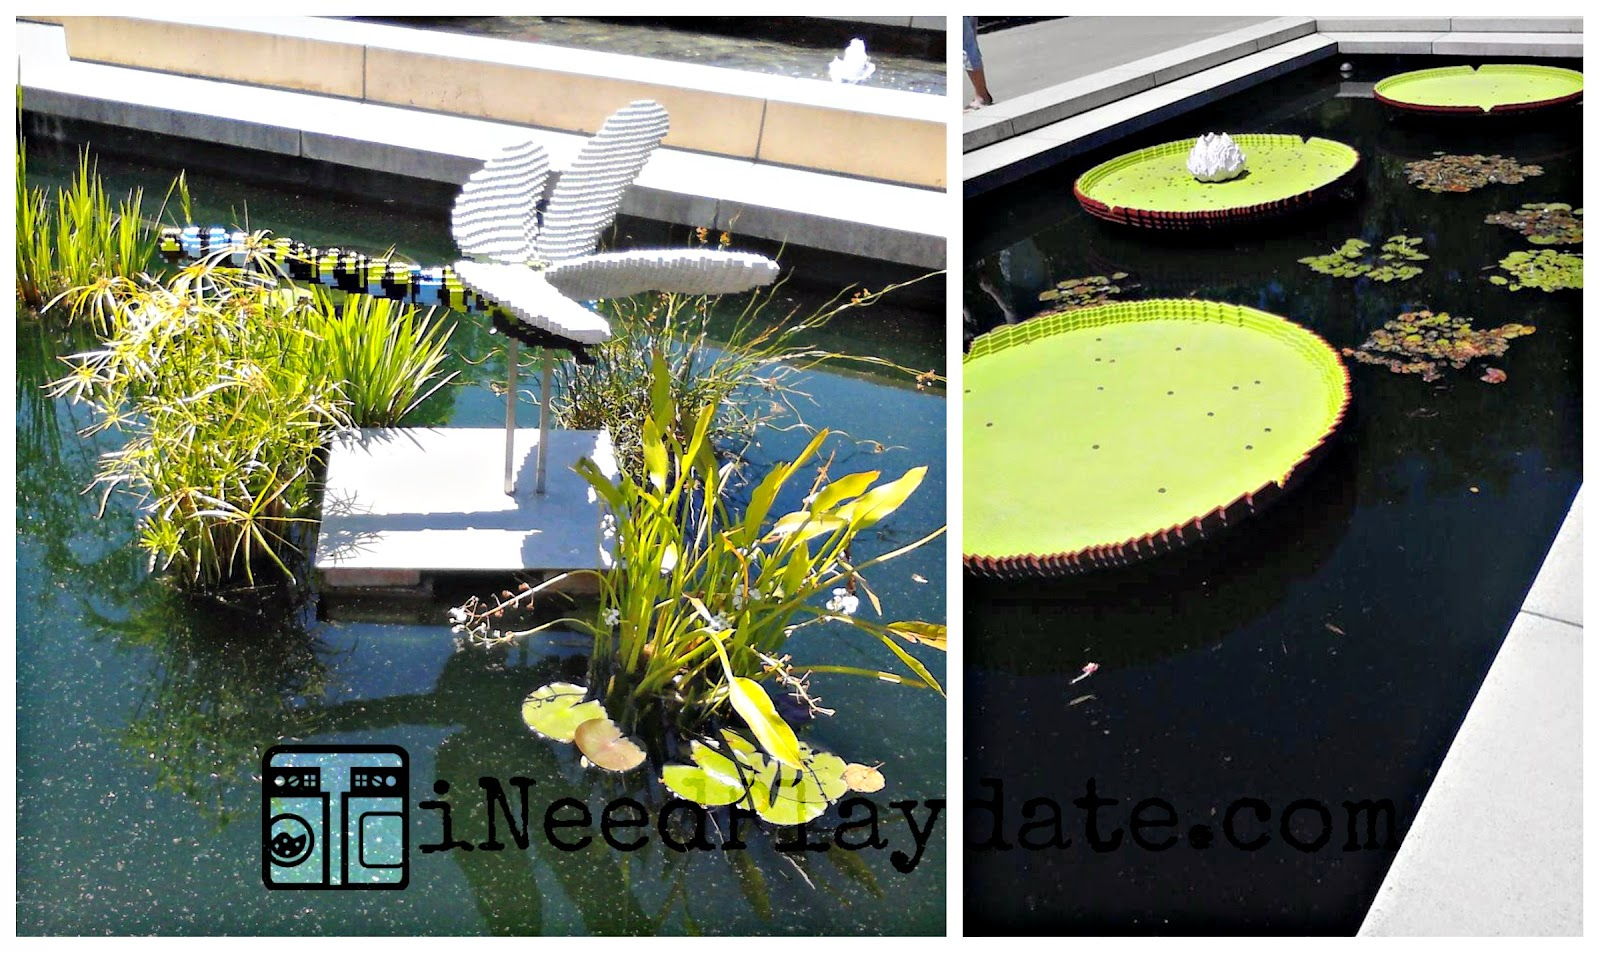 @CBGarden + LEGOS: Lilly pond and dragon flies